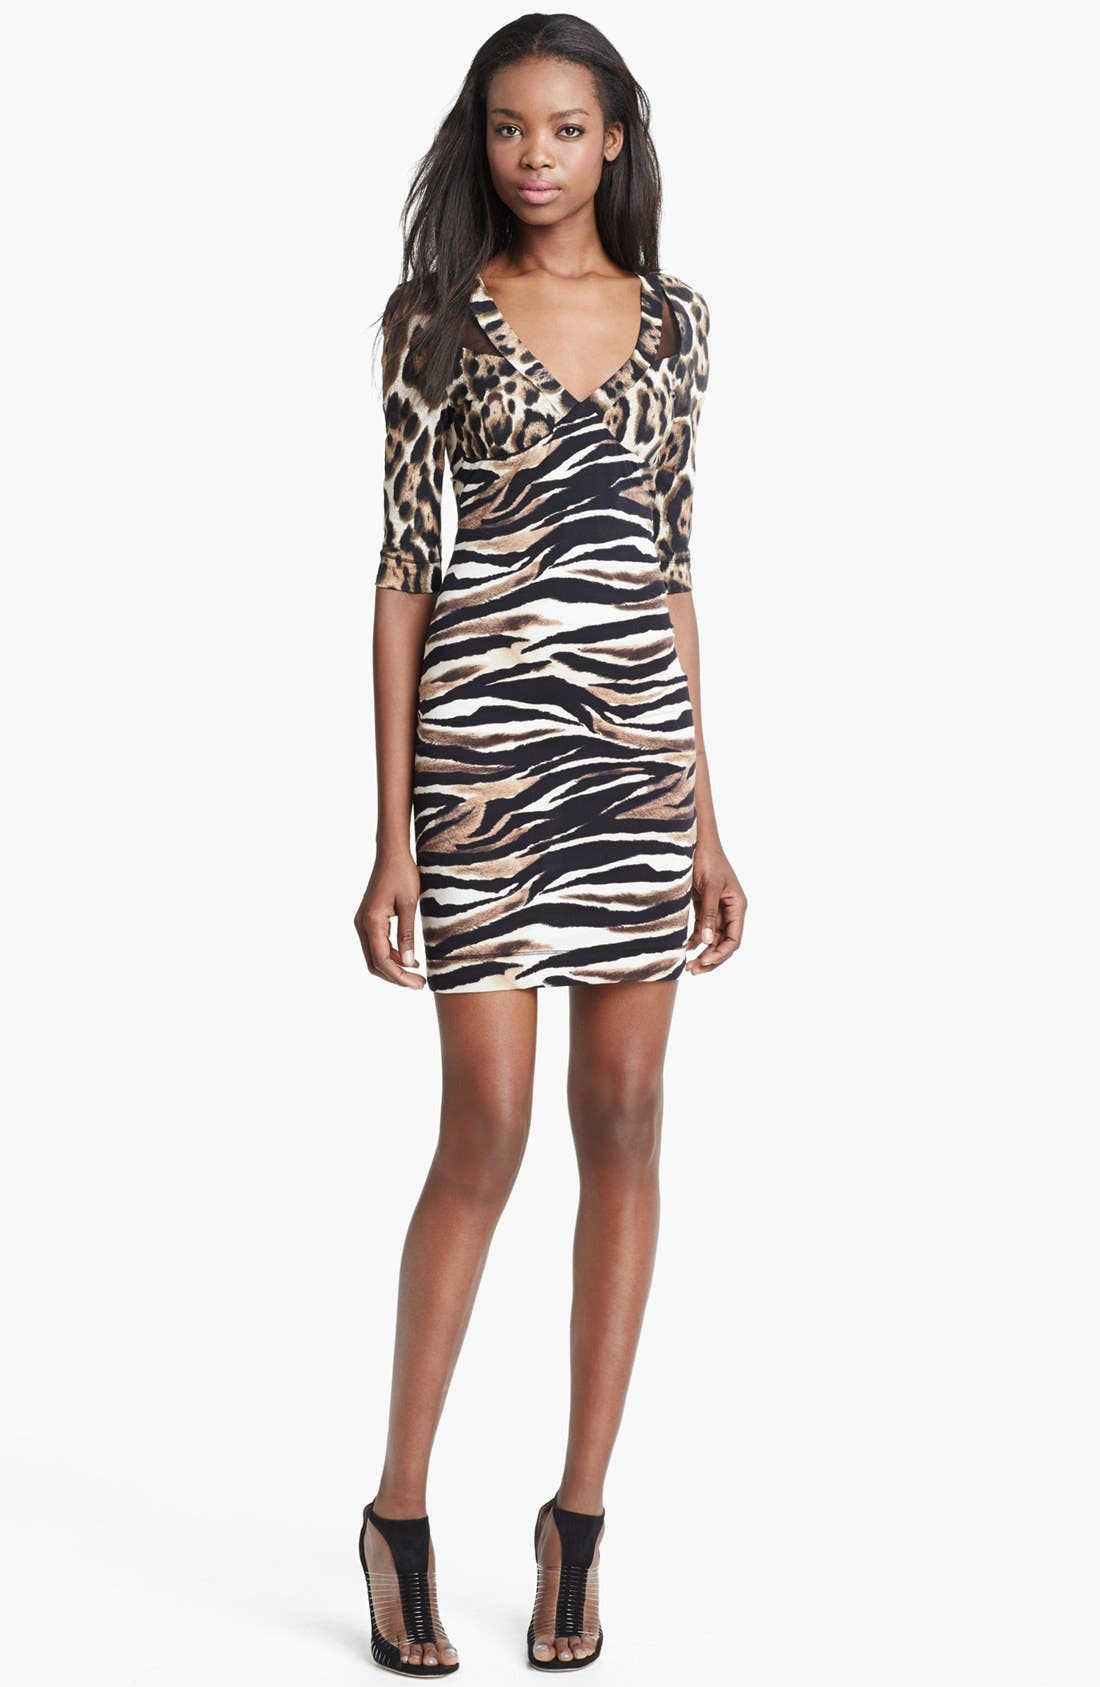 Main Image - Just Cavalli Leopard & Zebra Print Jersey Dress